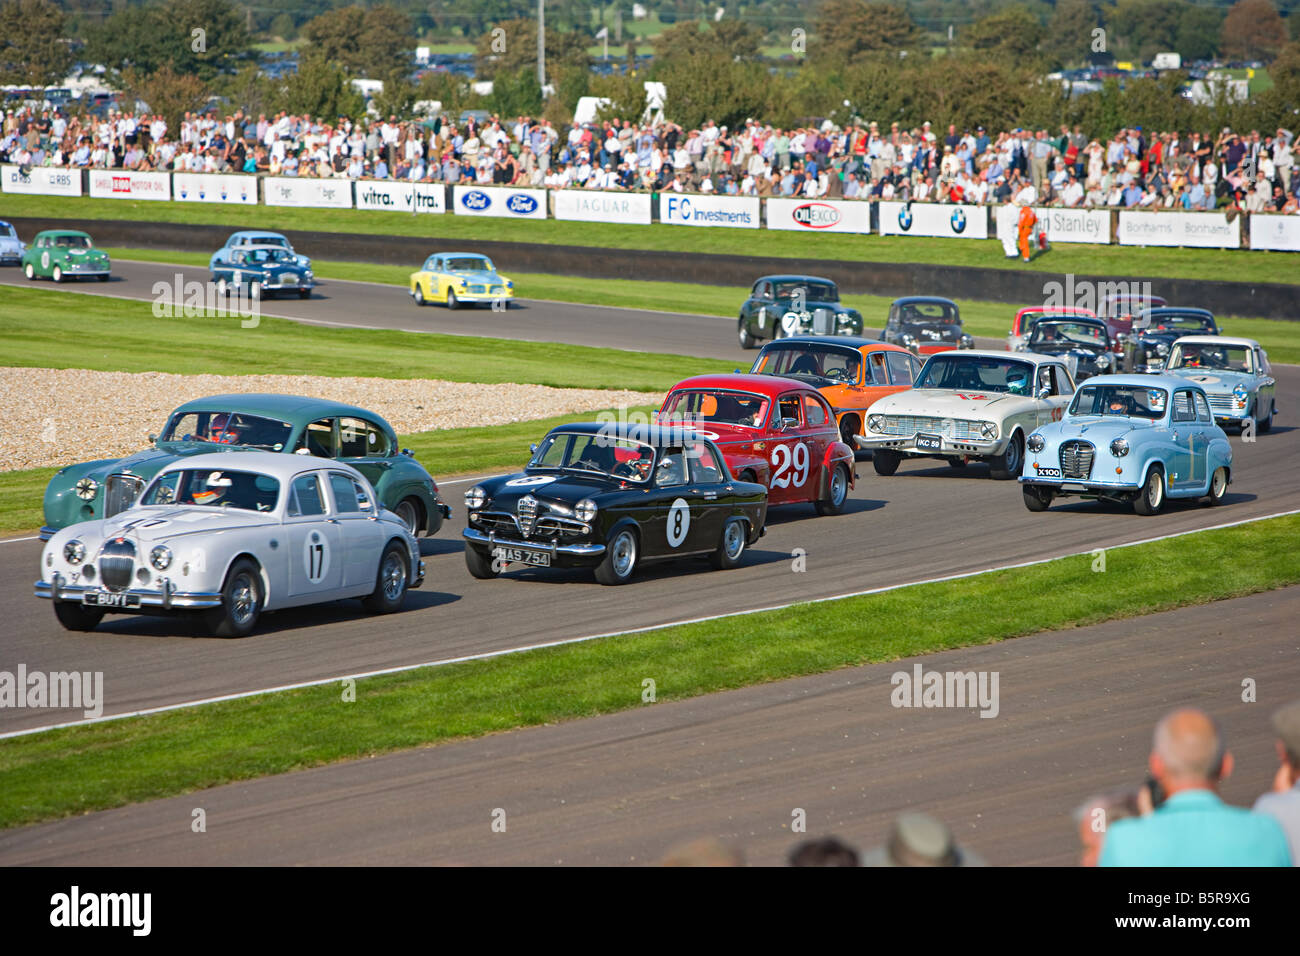 Classic car race at Goodwood Revival,  Goodwood, West Sussex. Stock Photo